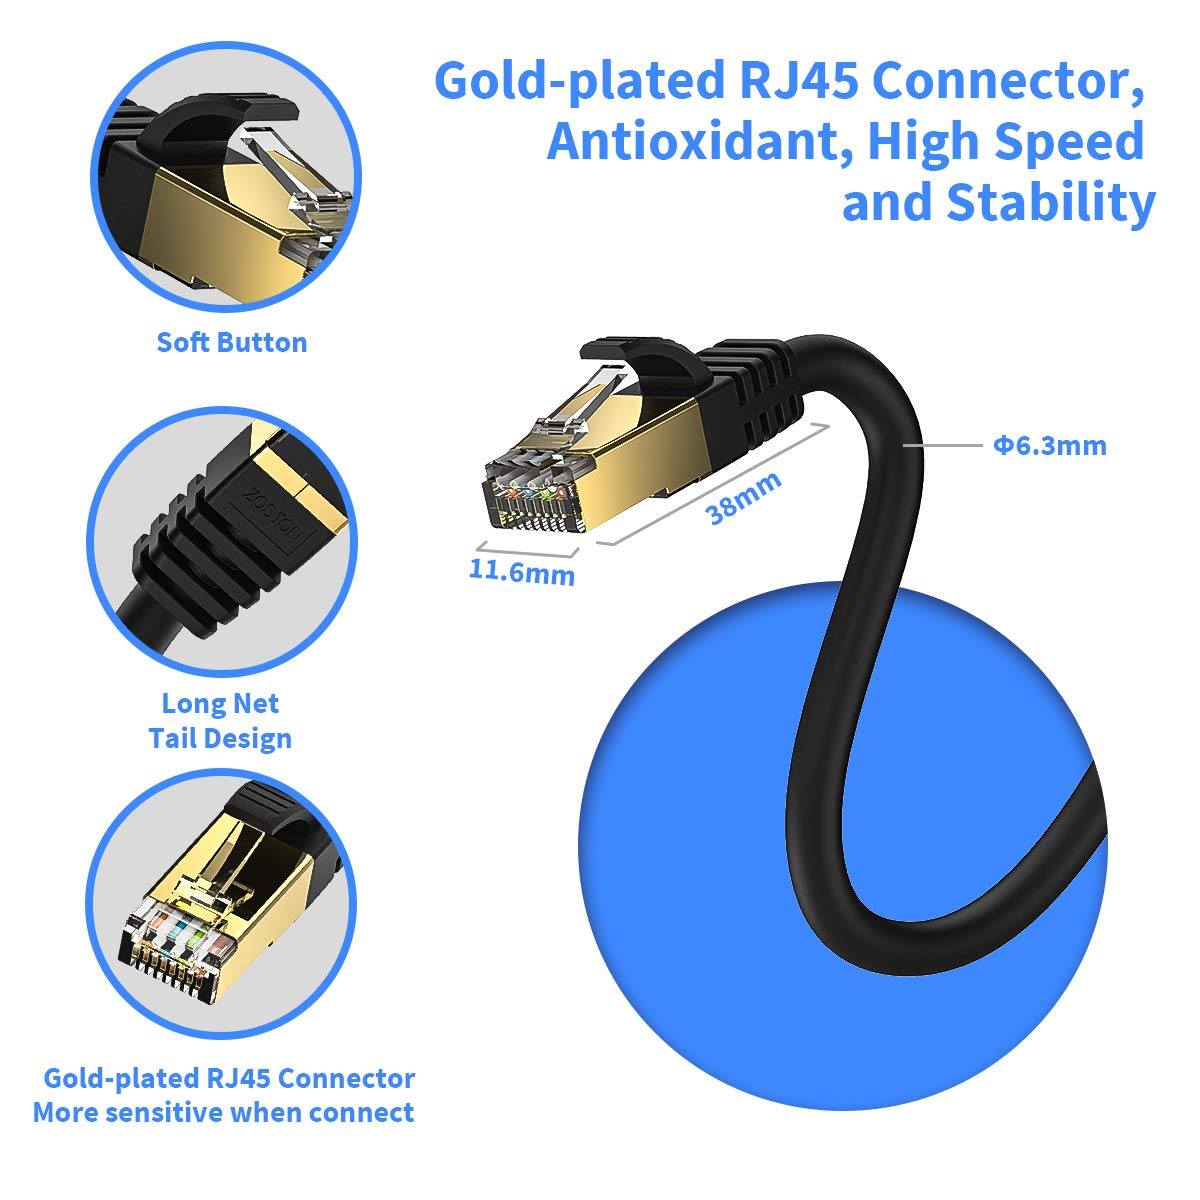 Ethernet Cable 30 ft Cat 8 Cable Zosion Cat 8 High Speed 2000MHZ 40GBPS Internet Patch Cable Cord Shielded Durable Gold Plated RJ45 Connector for Gaming PC TV PS4 Modem Router Mac Laptop Xbox Movie